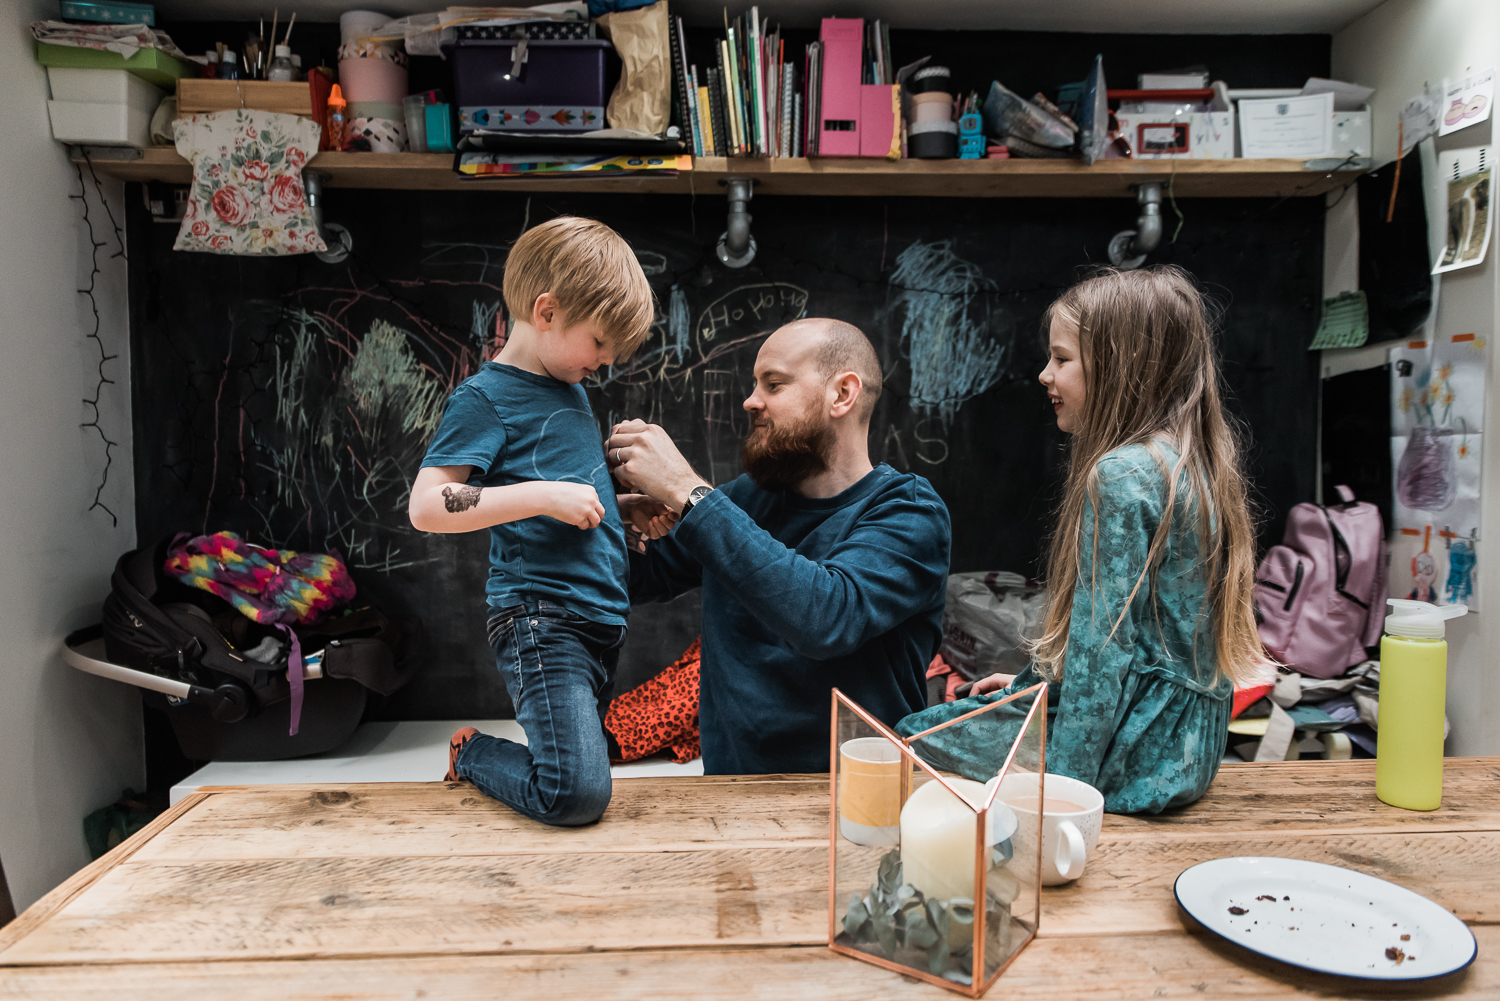 daughter, son, dad at the kitchen table colourful room